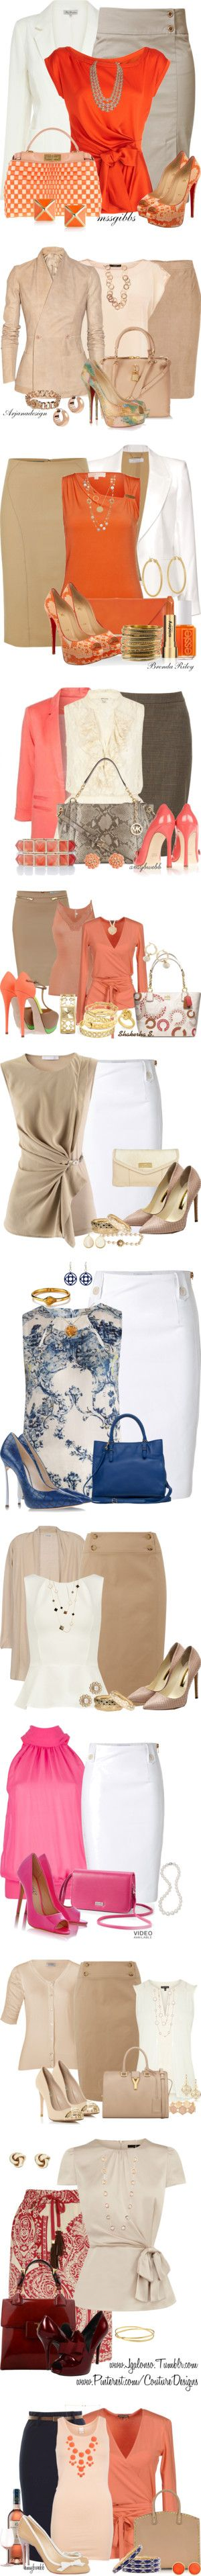 Office In The Spring by esha2001 on Polyvore